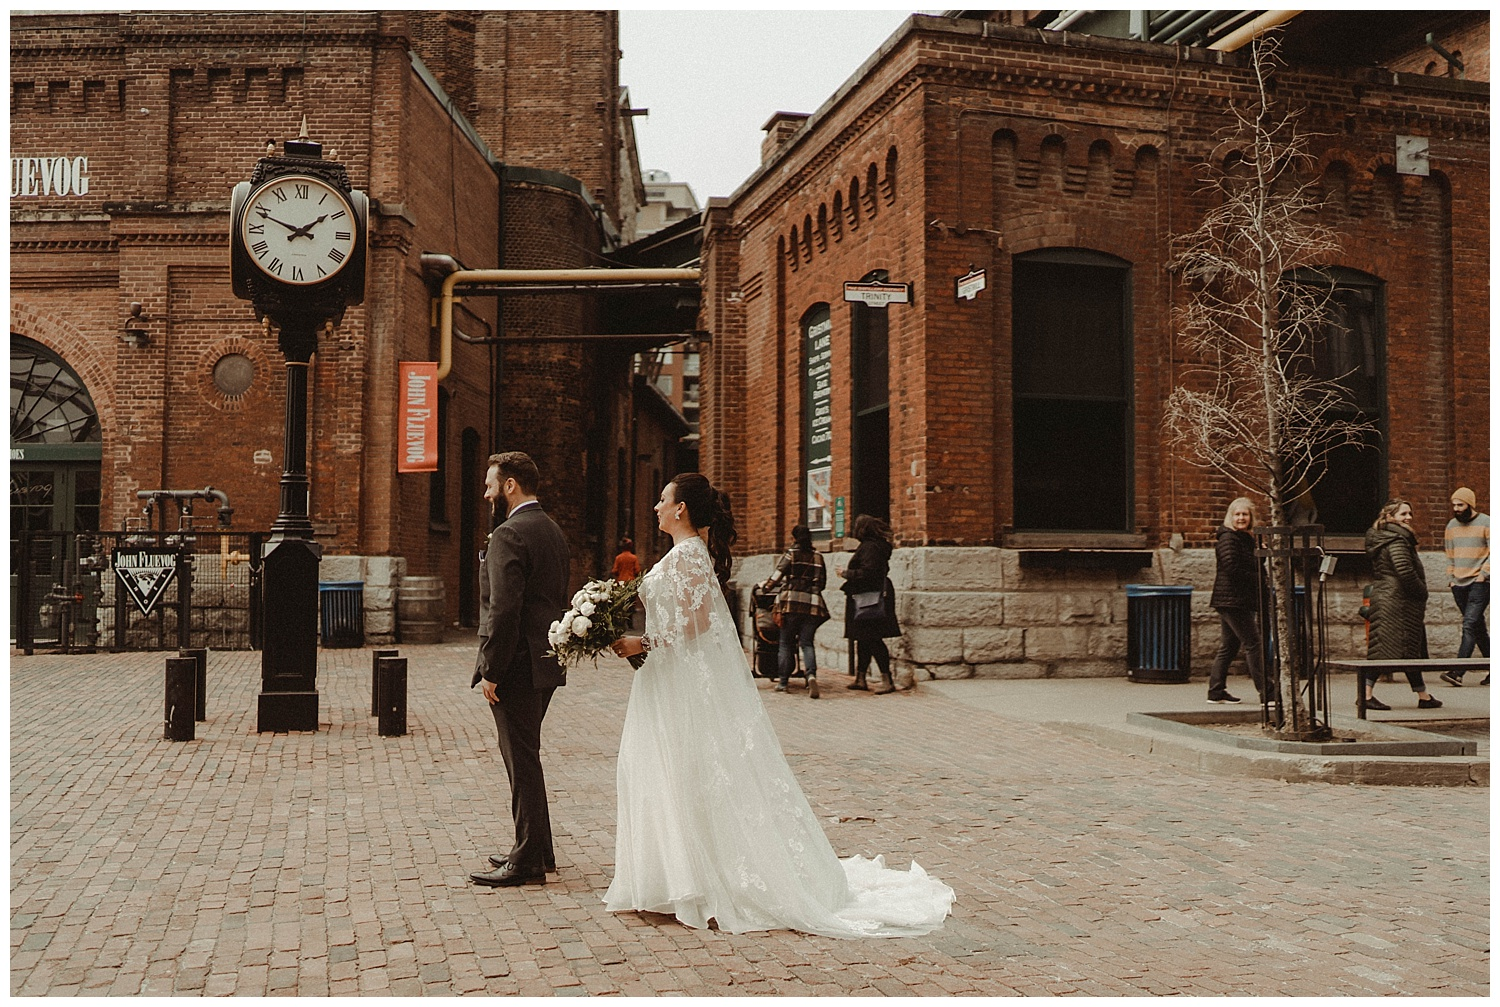 Katie Marie Photography | Archeo Wedding Arta Gallery Wedding | Distillery District Wedding | Toronto Wedding Photographer | Hamilton Toronto Ontario Wedding Photographer |_0005.jpg